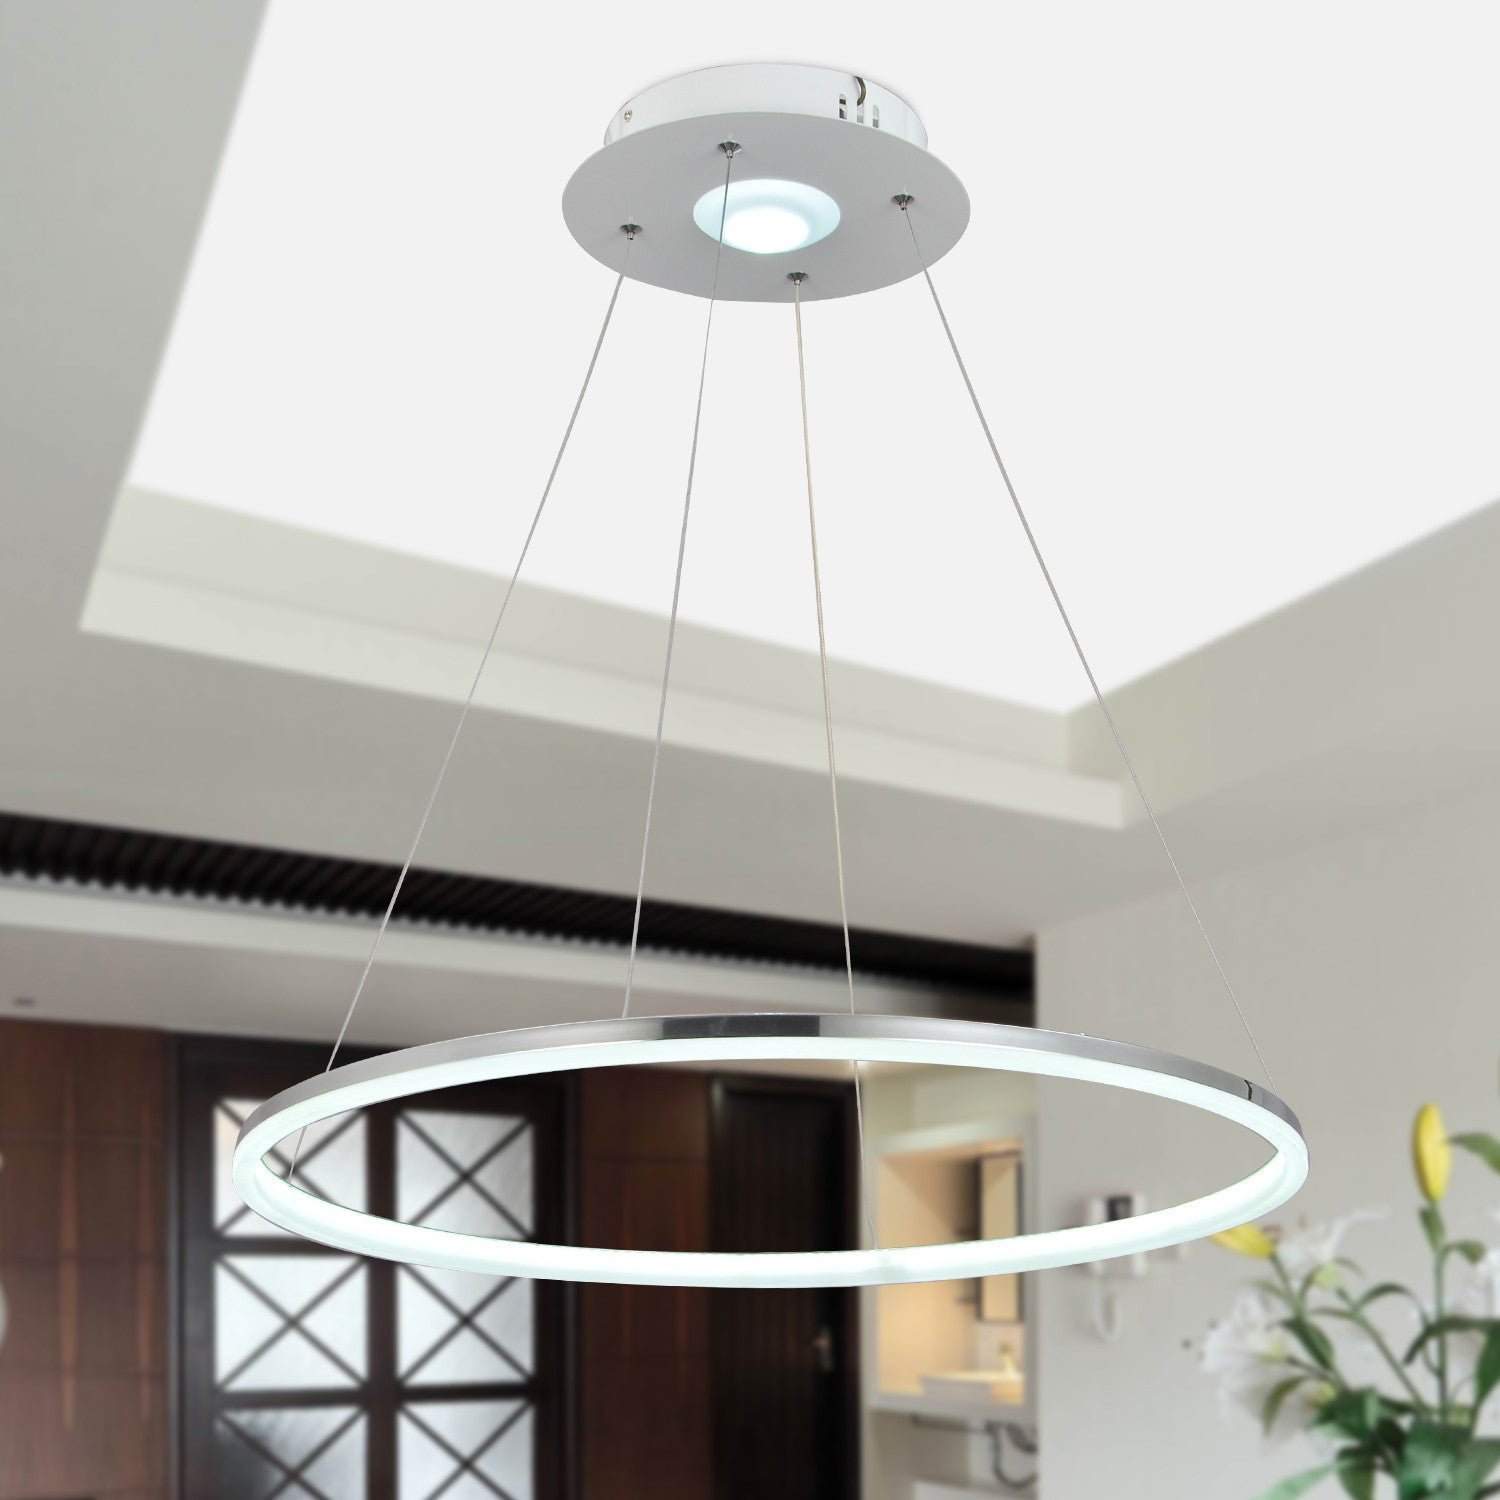 Modern acrylic chandelier full size of chandelier acrylic modern nature white led acrylic pendant light remote control included max w chrome finish with modern acrylic chandelier arubaitofo Choice Image